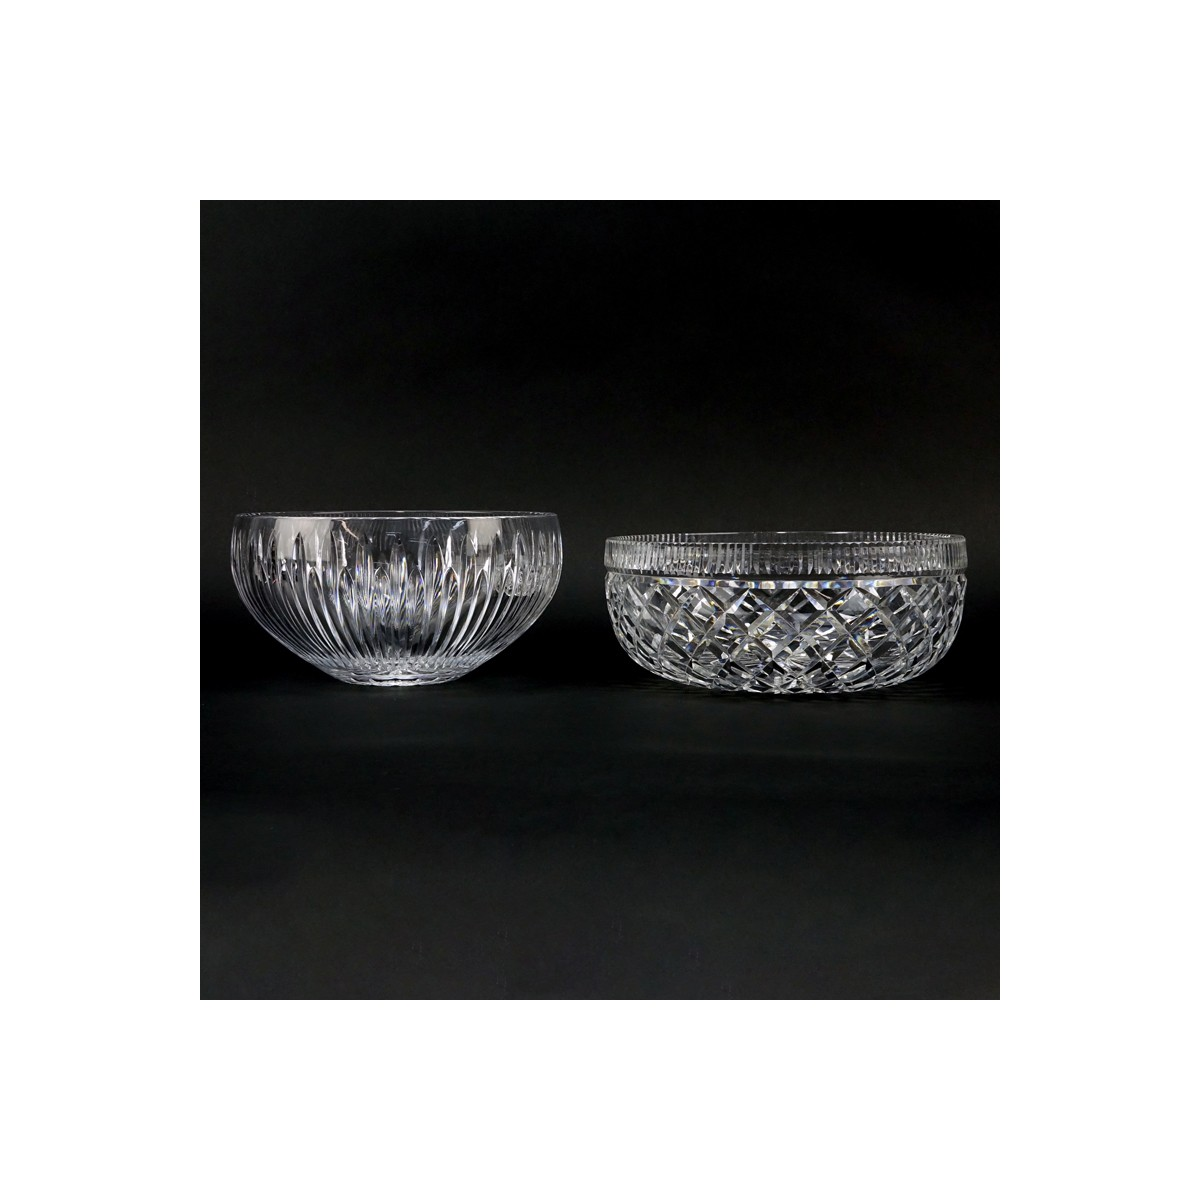 "Two (2) Waterford Crystal Round Bowls. Each signed appropriately. One in the ""Carina"" Pattern other"